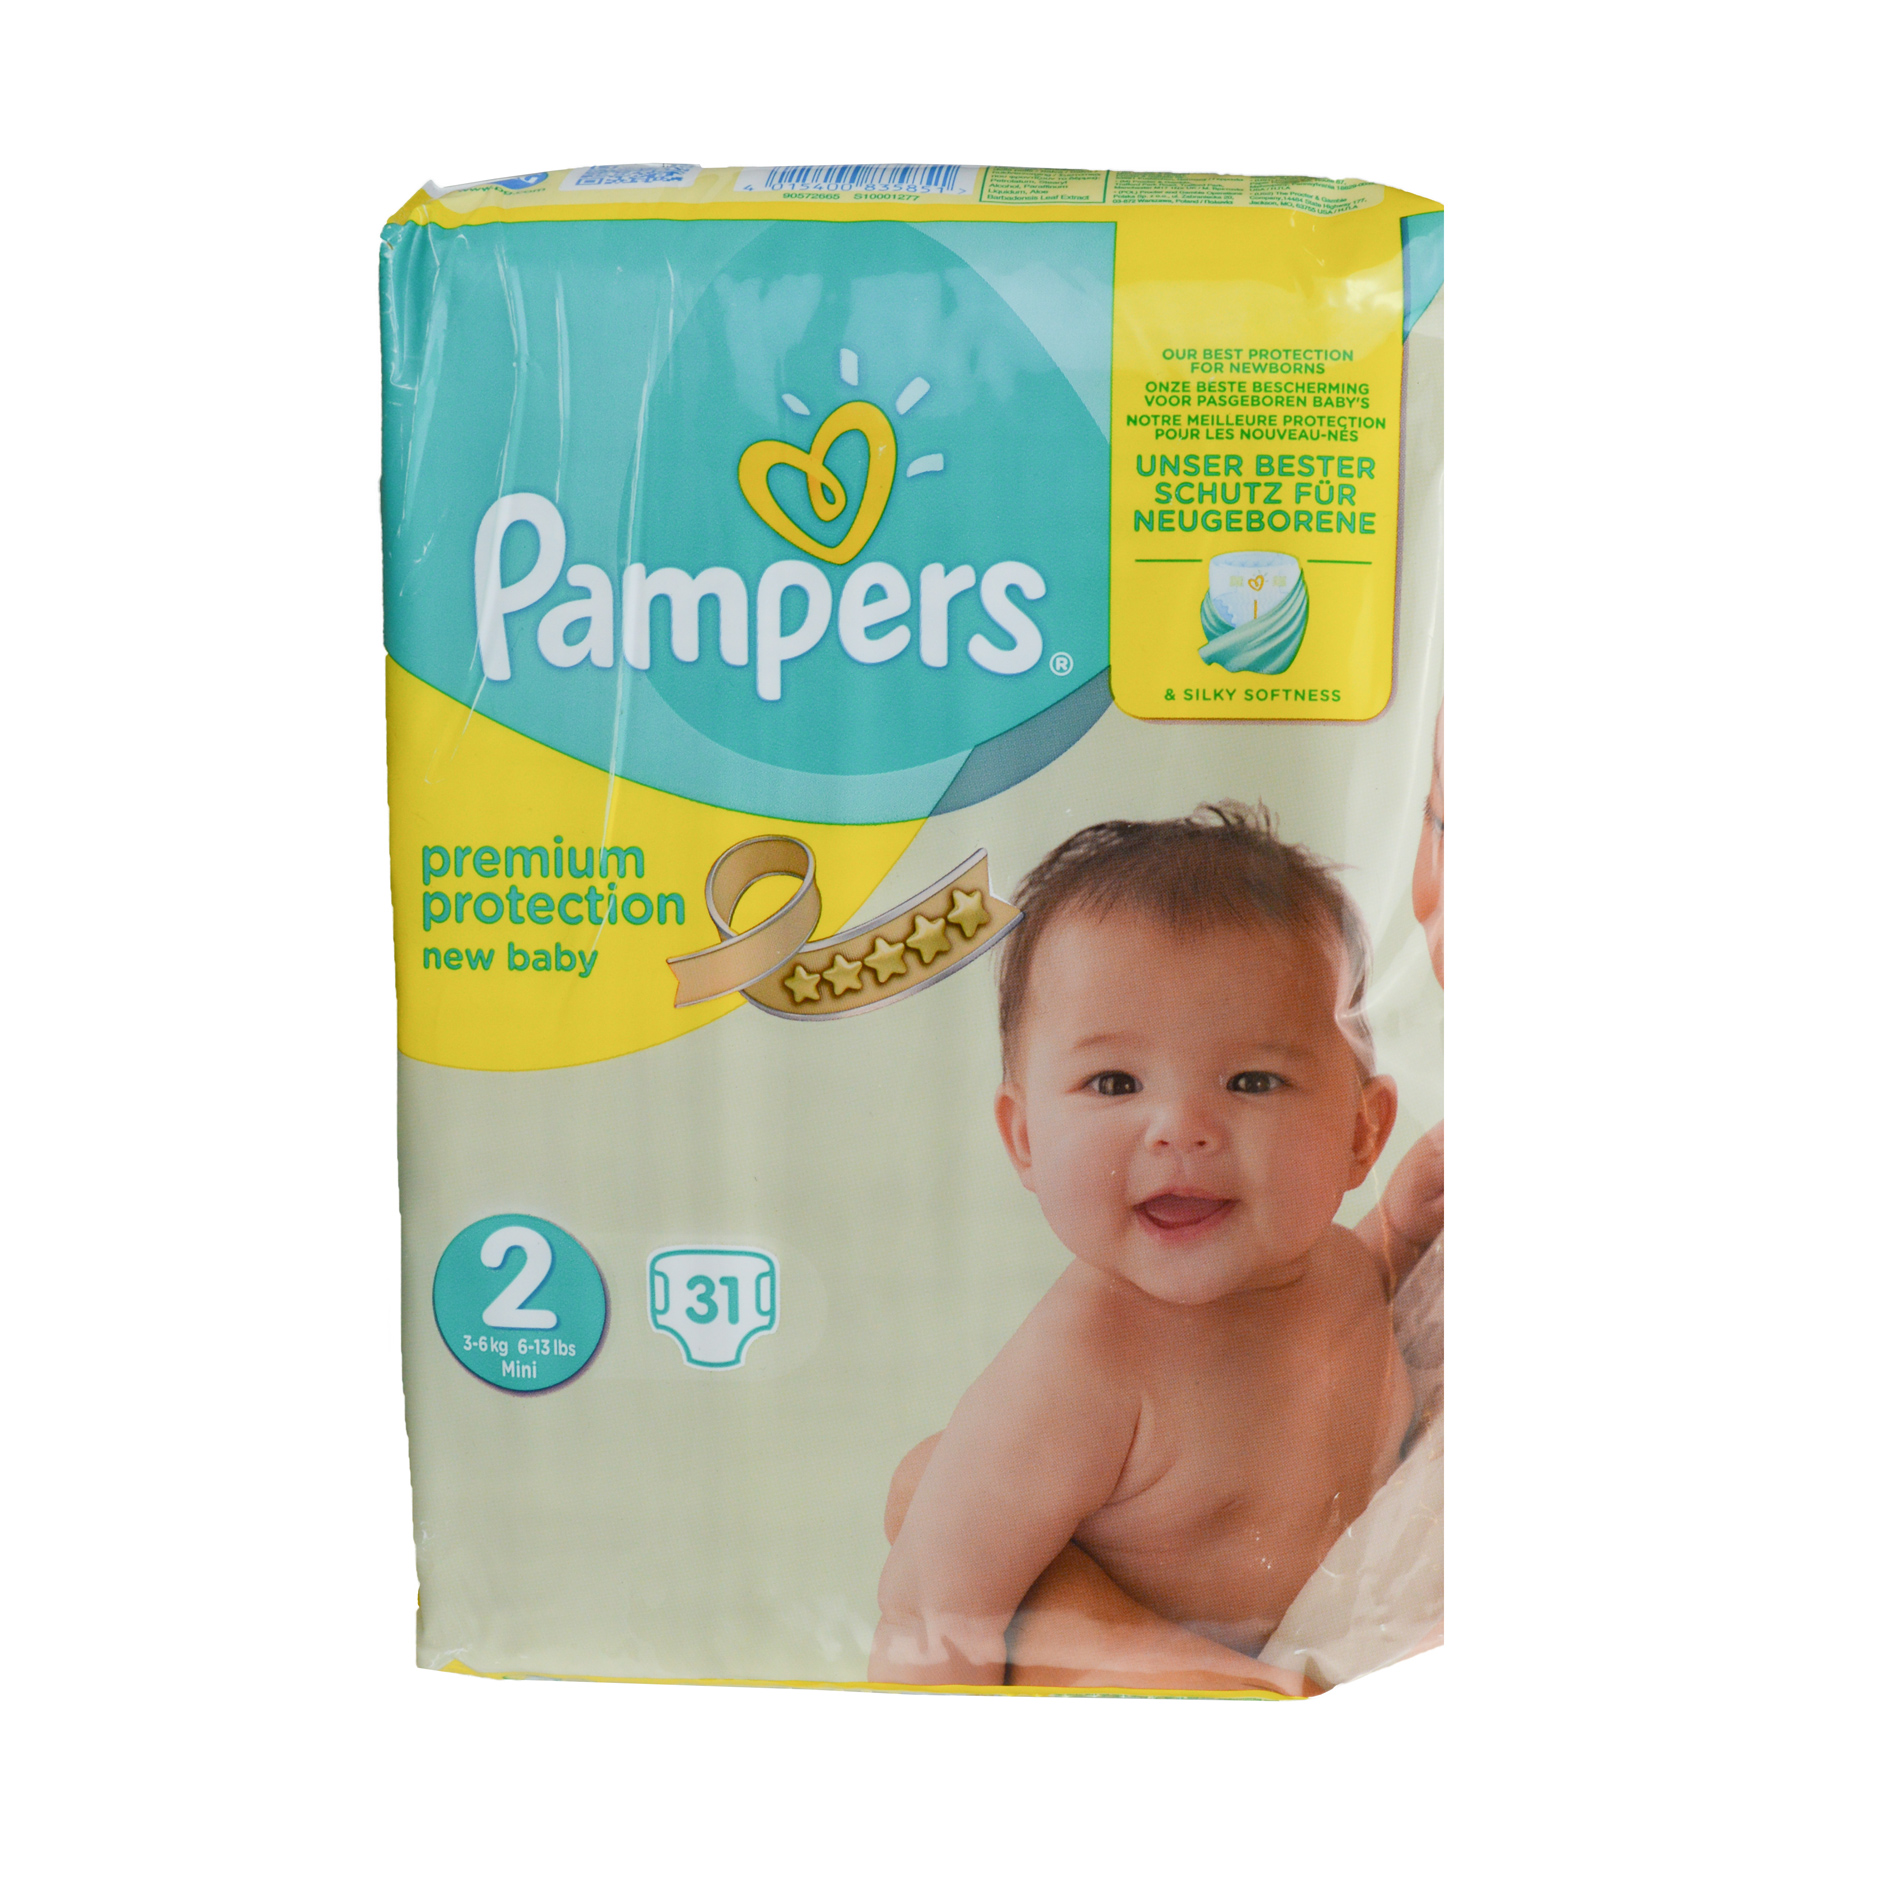 Baby Pampers Premium Protection Baby Nappy 2-5kg Newborn Size 1 Baby Changing & Nappies pack Of 2